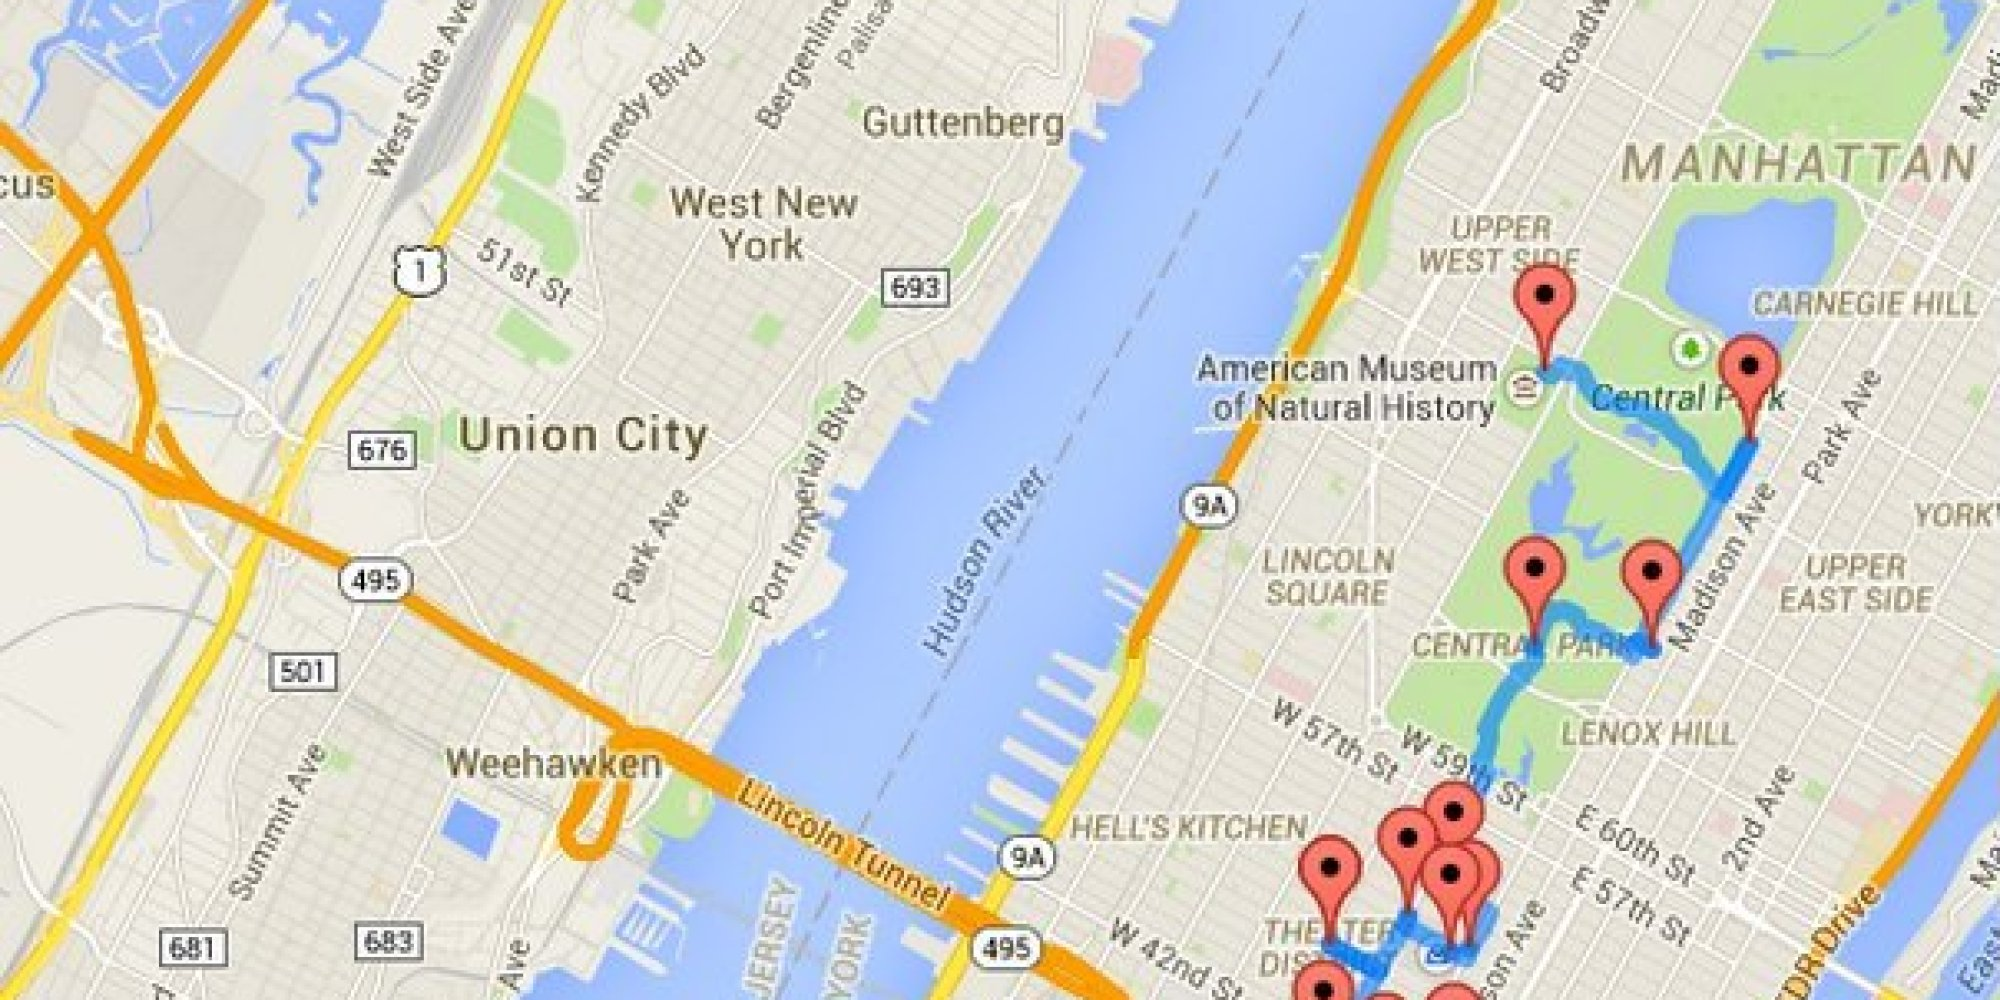 Manhattan attractions map